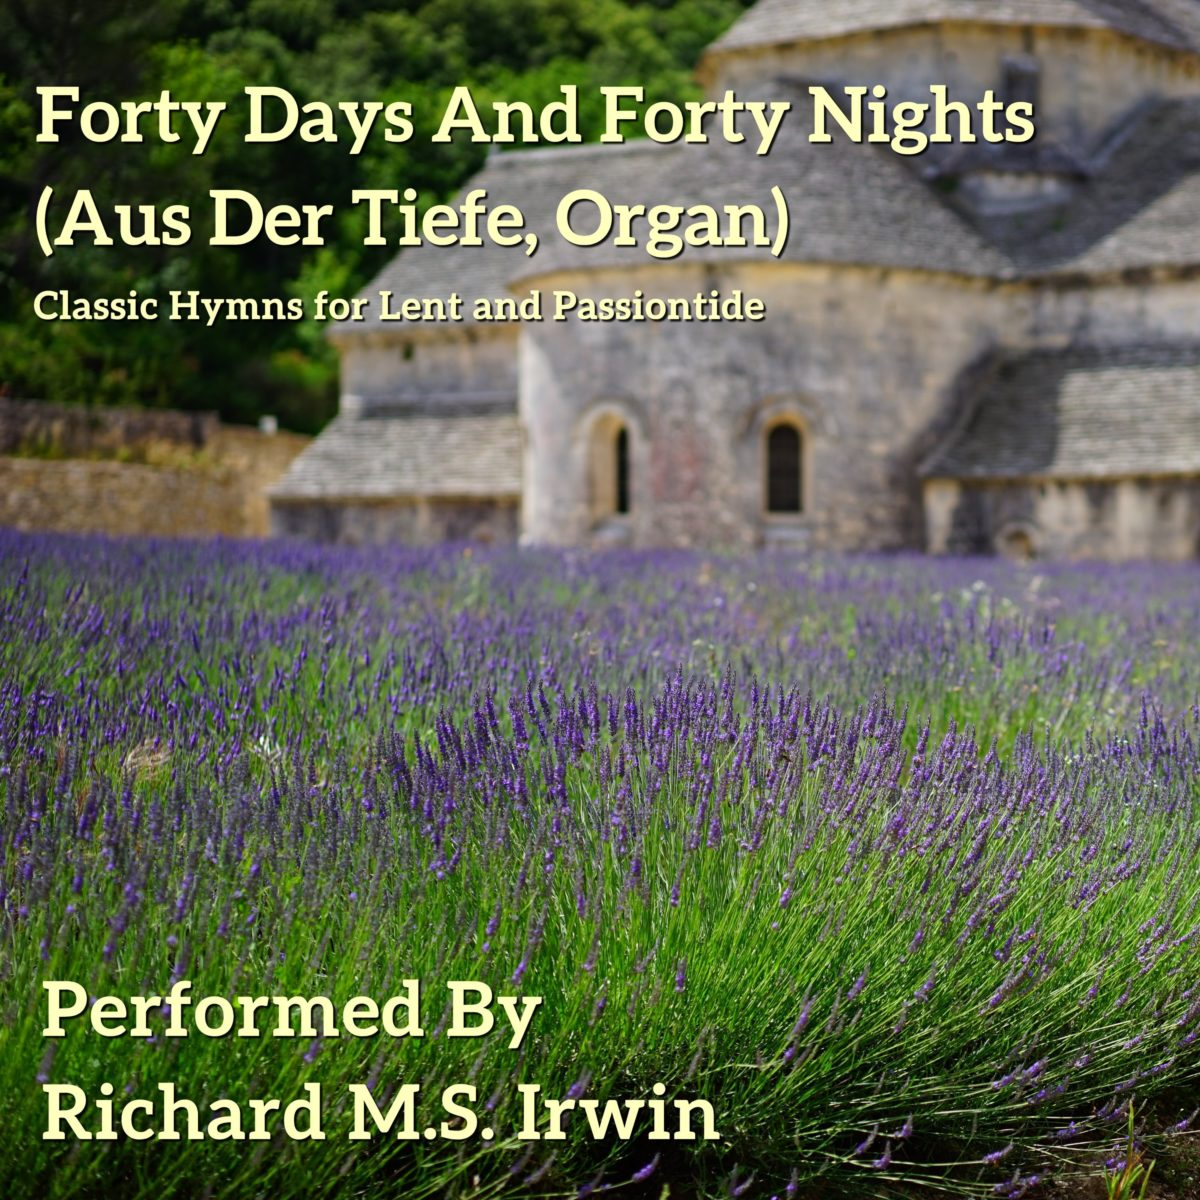 Forty Days And Forty Nights (Aus Der Tiefe, Organ, 5 Verses)